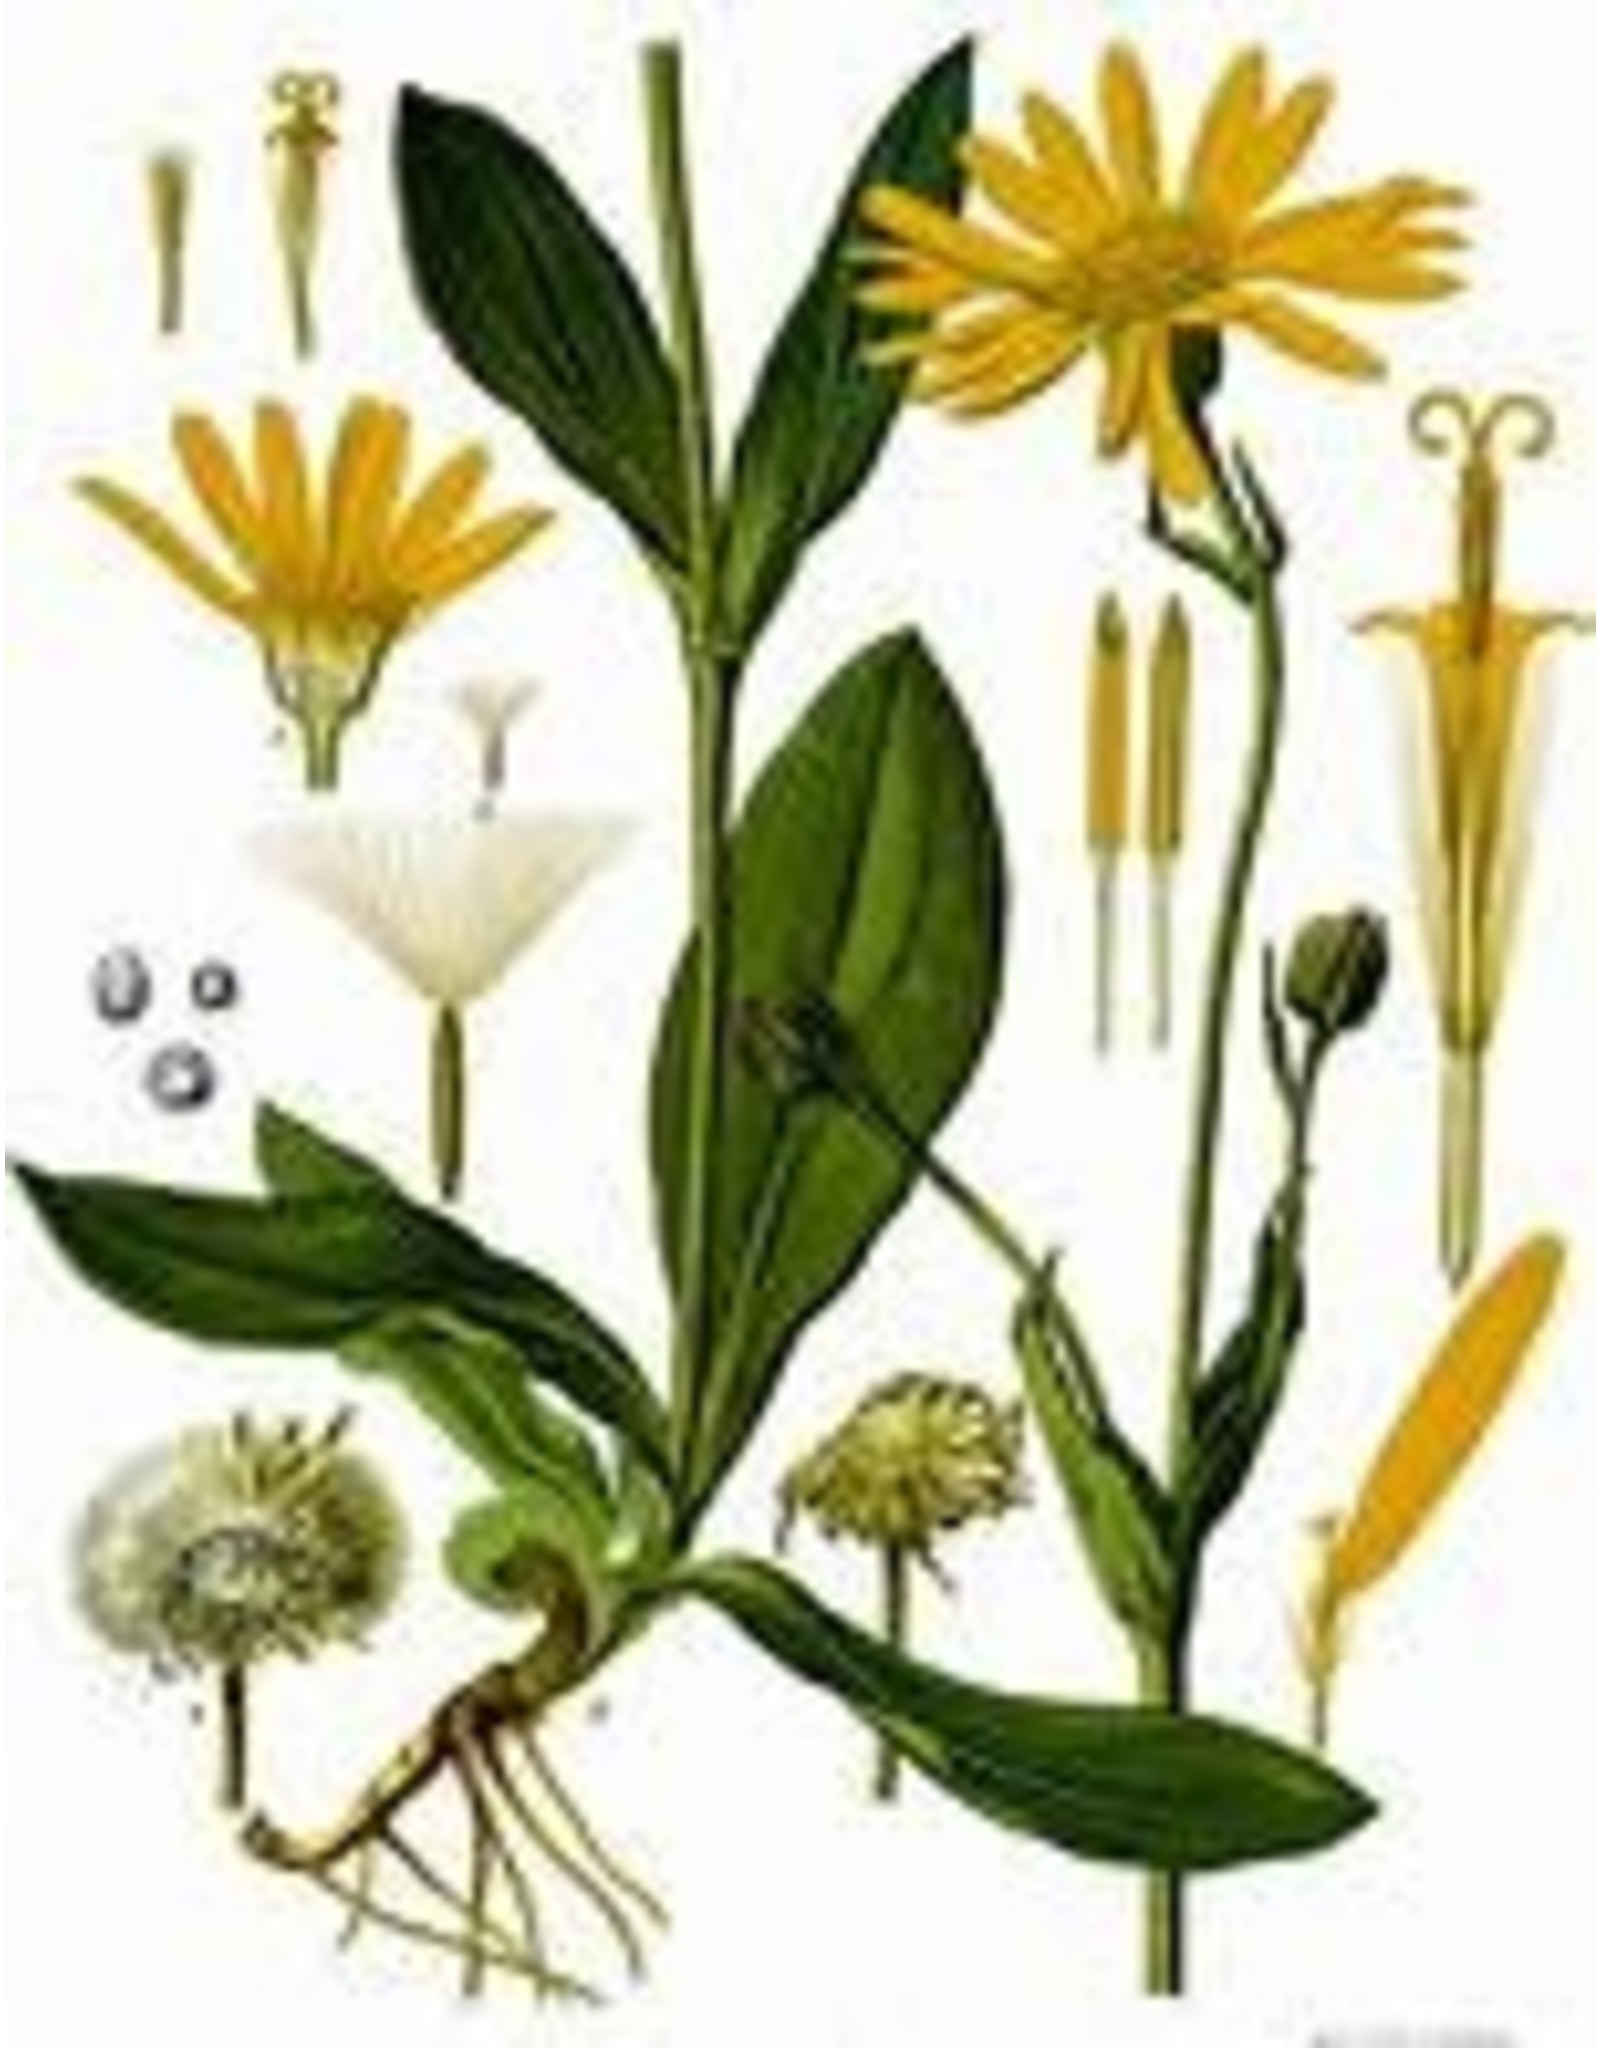 Arnica Flowers - Whole